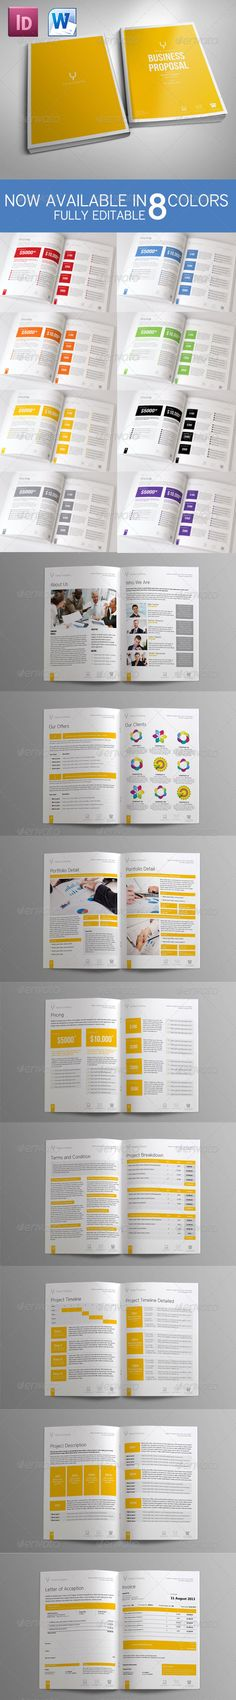 Gstudio Web Proposal Template V2 Proposal templates, Proposals - microsoft word proposal template free download